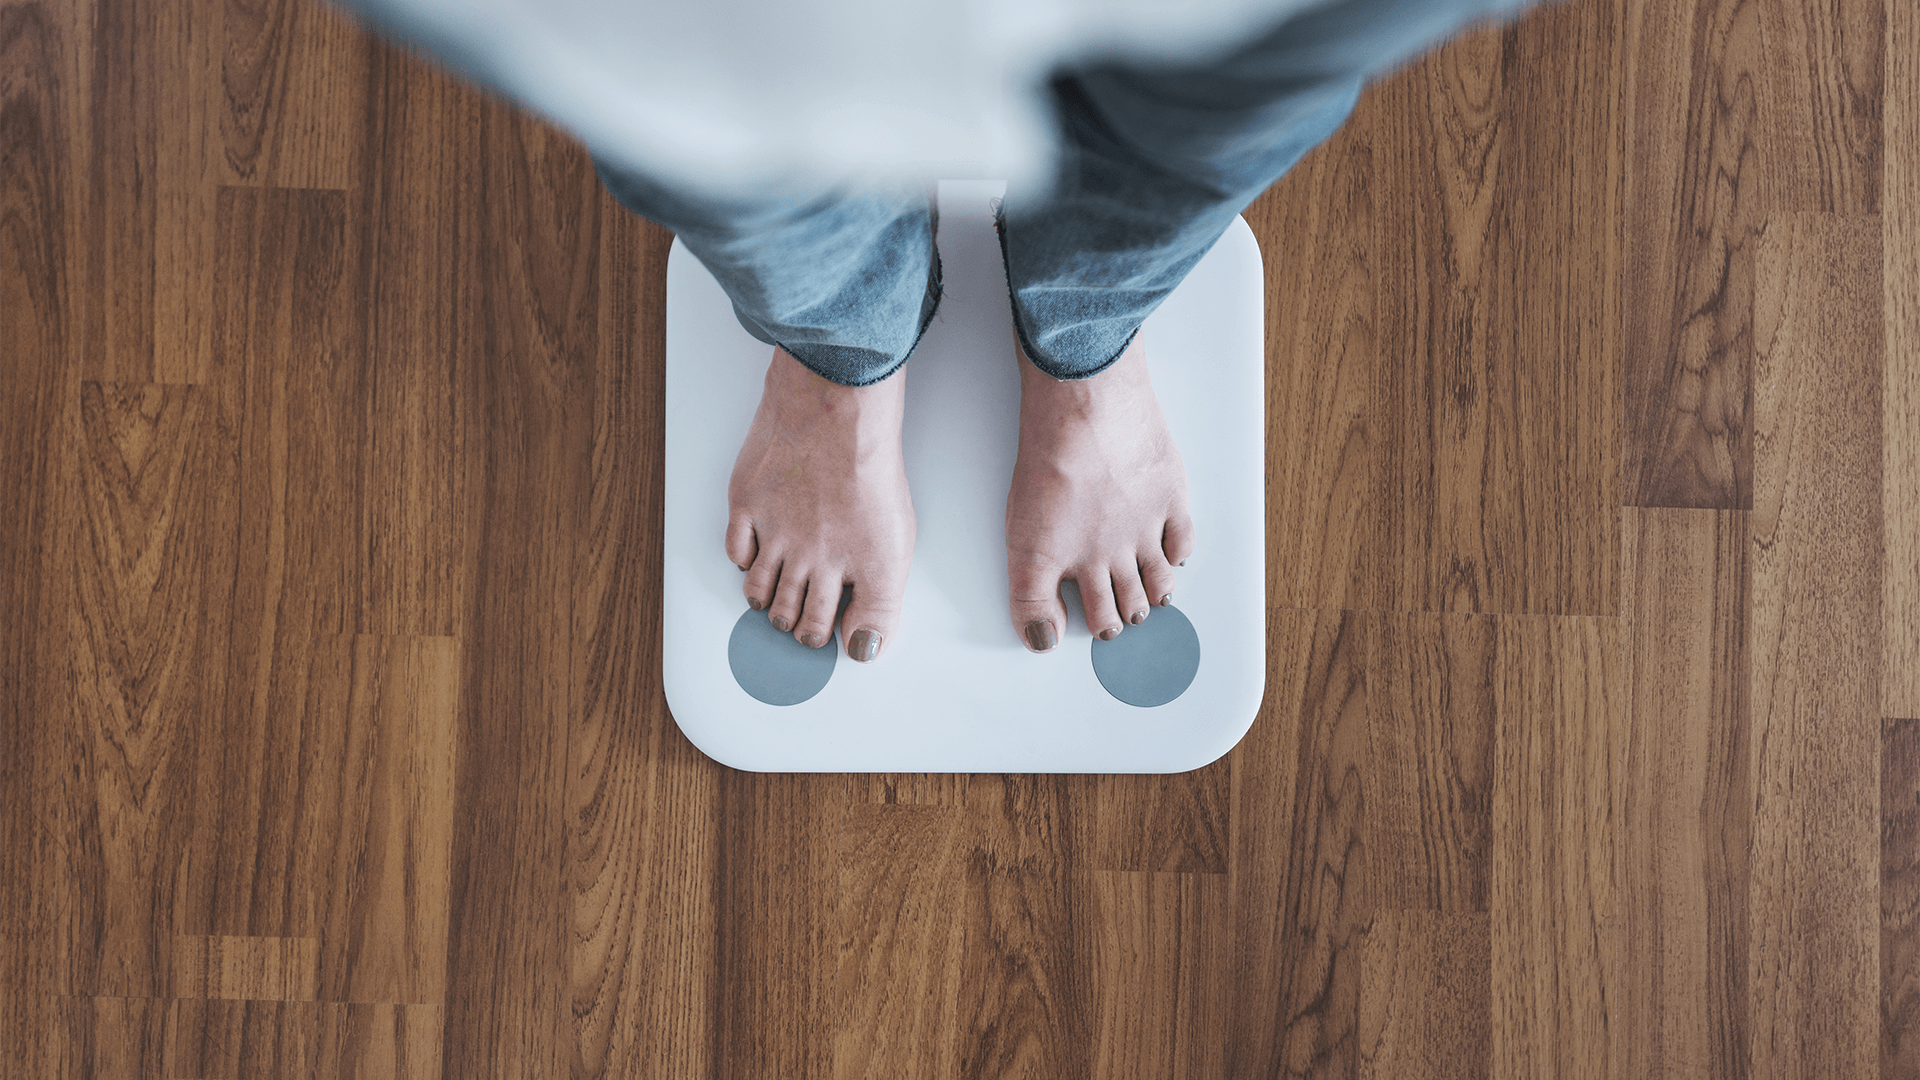 Does fat make you fat?